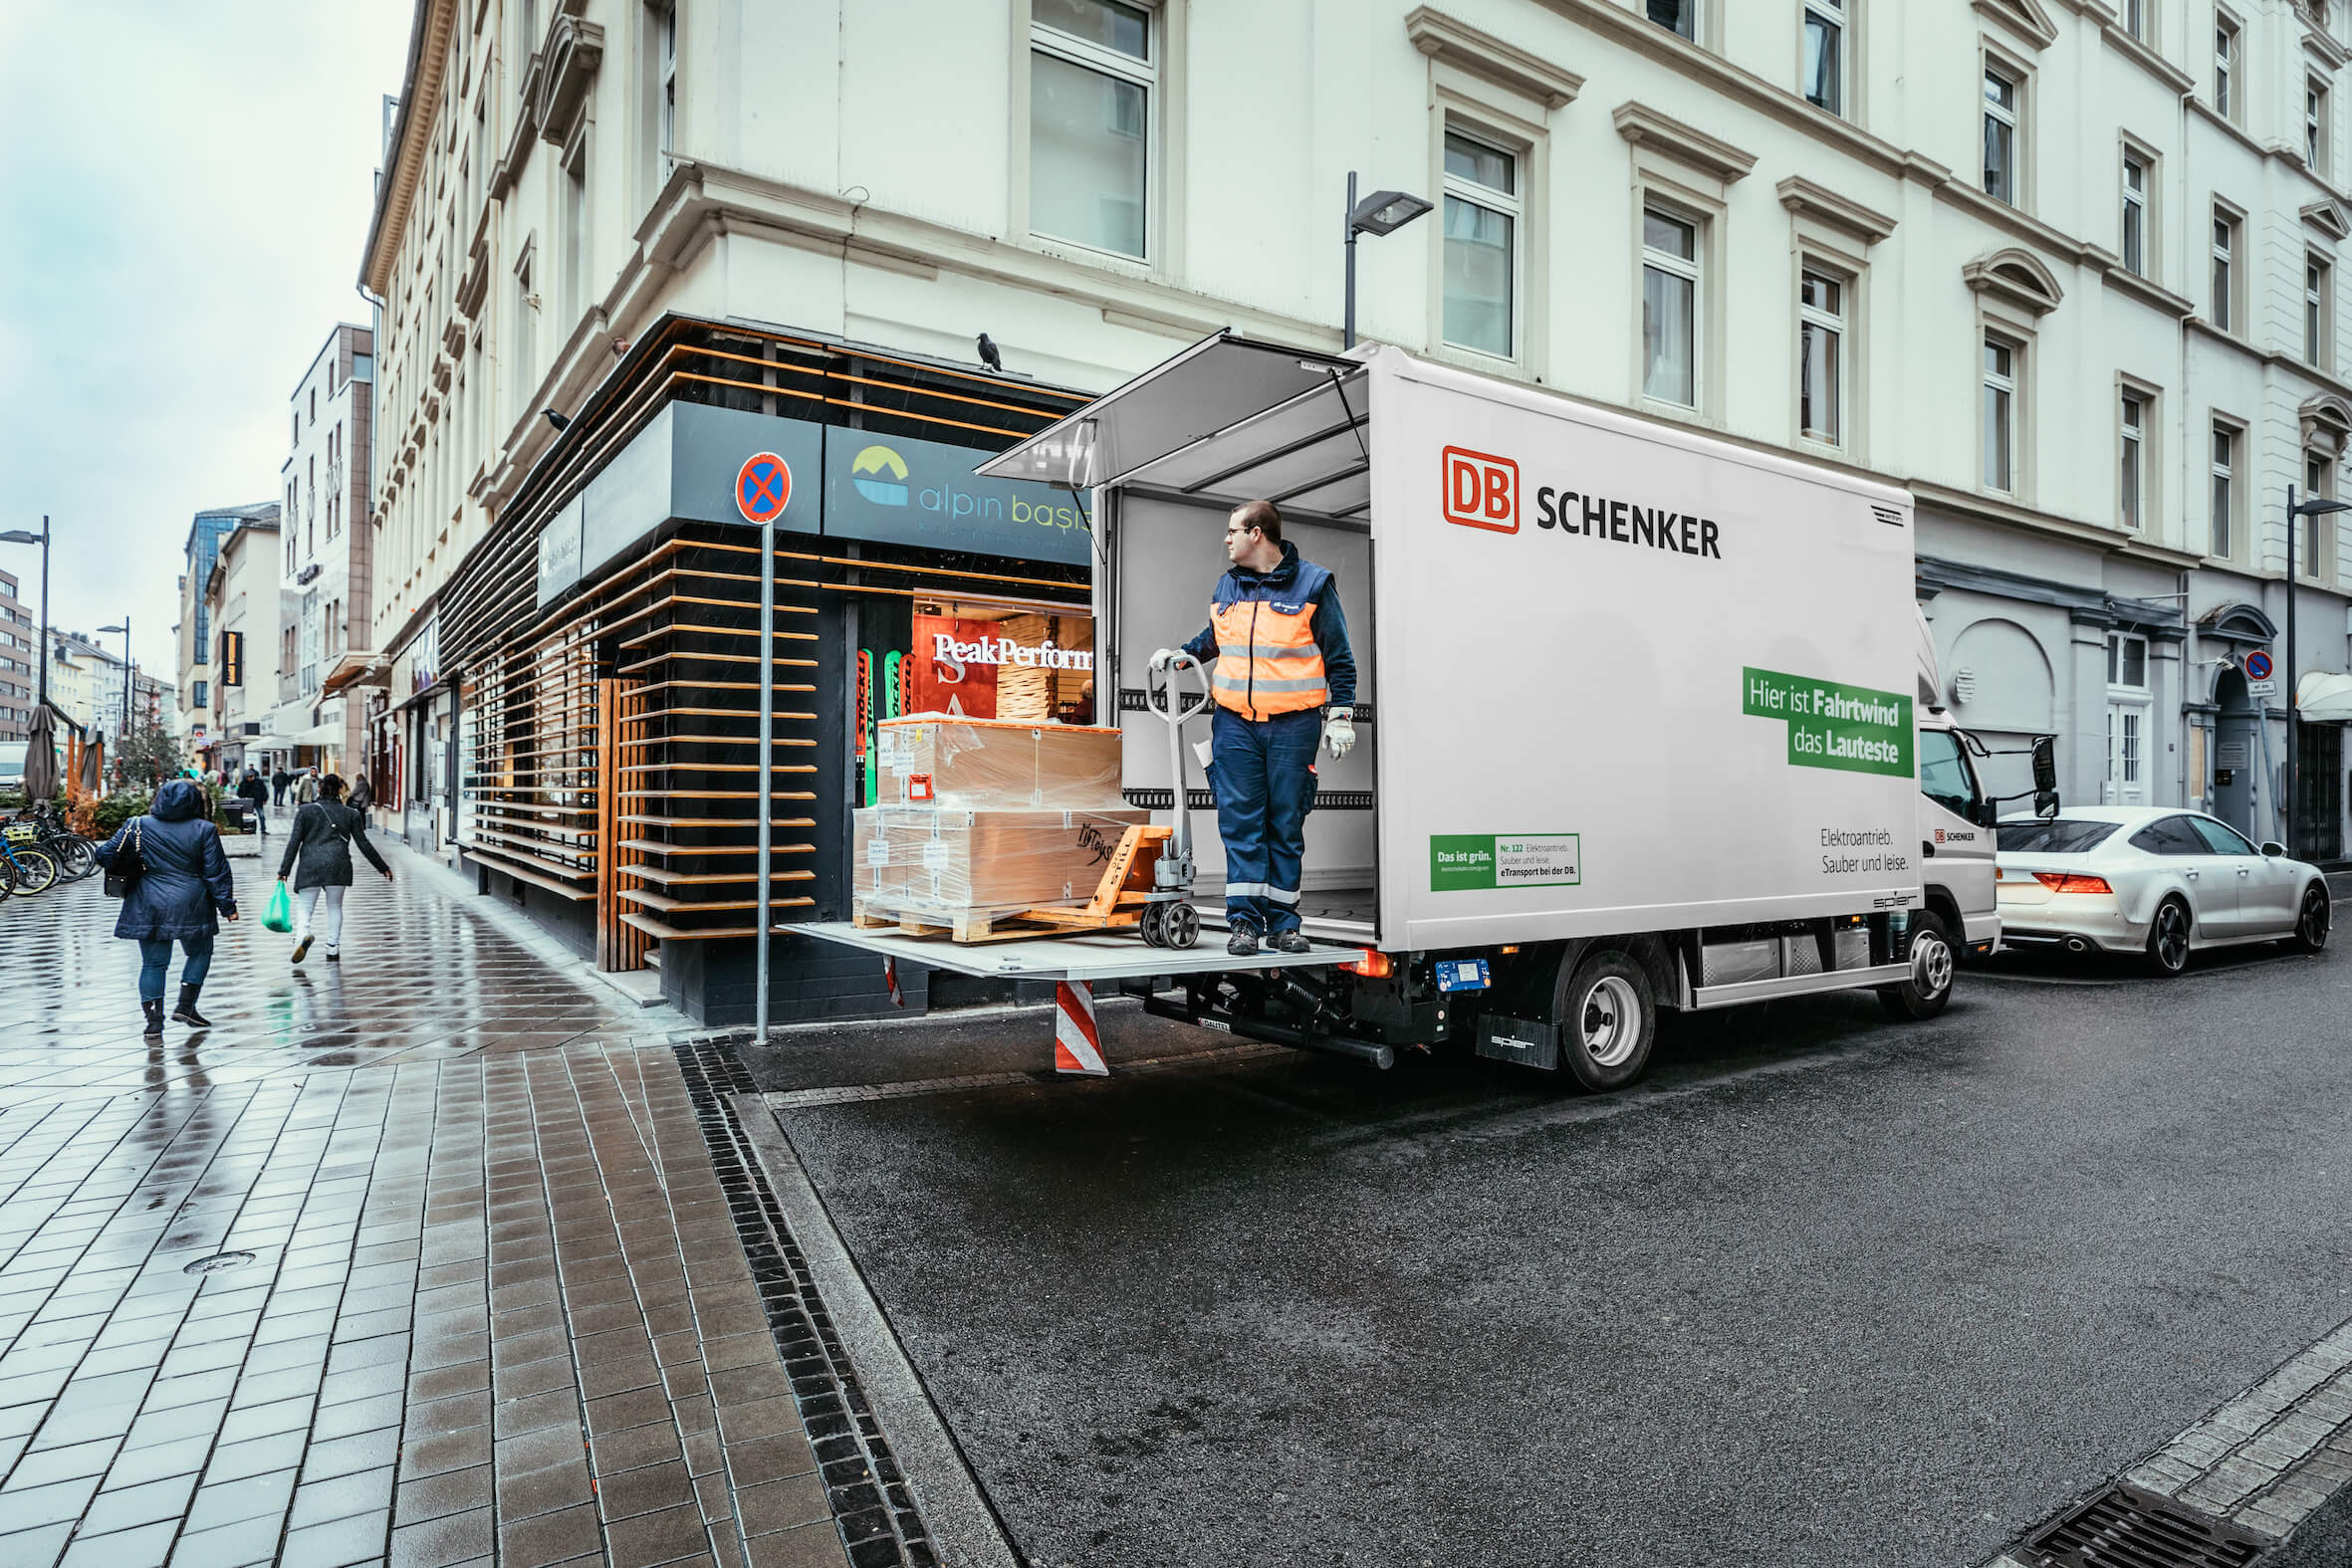 The driver unloads the vehicle in a pedestrian zone. © DB Schenker/Michael Neuhaus